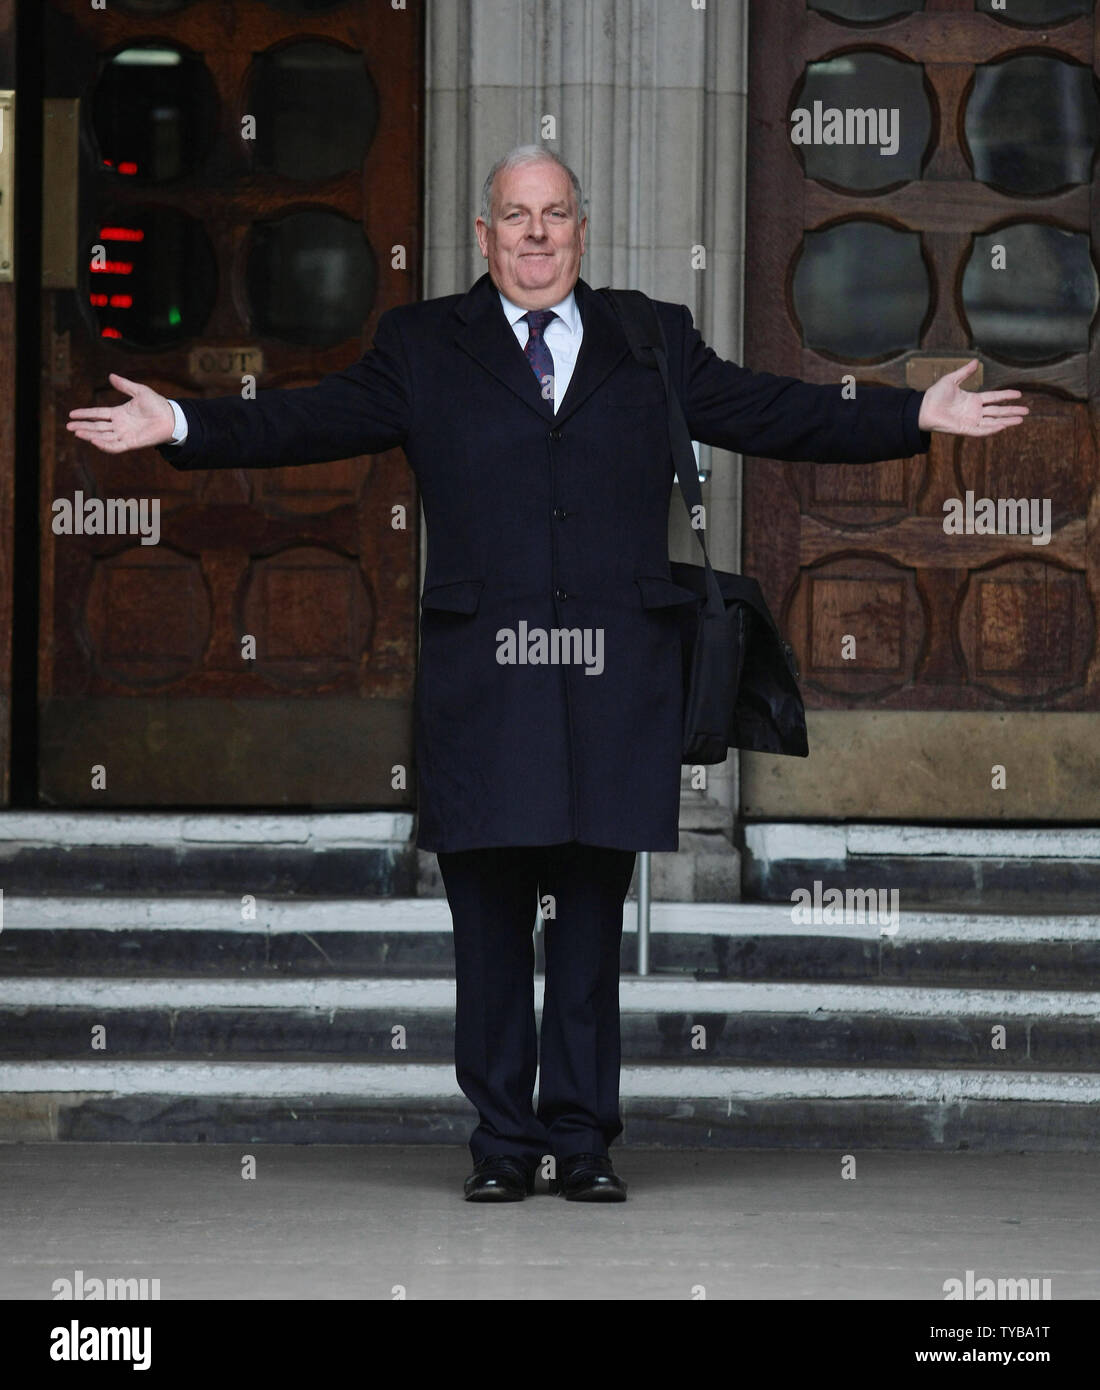 """Former Editor of the British tabloid newspaper """"The Sun"""" Kelvin Mackenzie leaves the Royal Courts of Justice after giving evidence at the Leveson Inquiry in London on Monday, January 09 2012. The Leveson Inquiry continues to look into the standards of the British Press and phone hacking practices which forced the closure of the """"News of the World.     UPI/Hugo Philpott Stock Photo"""